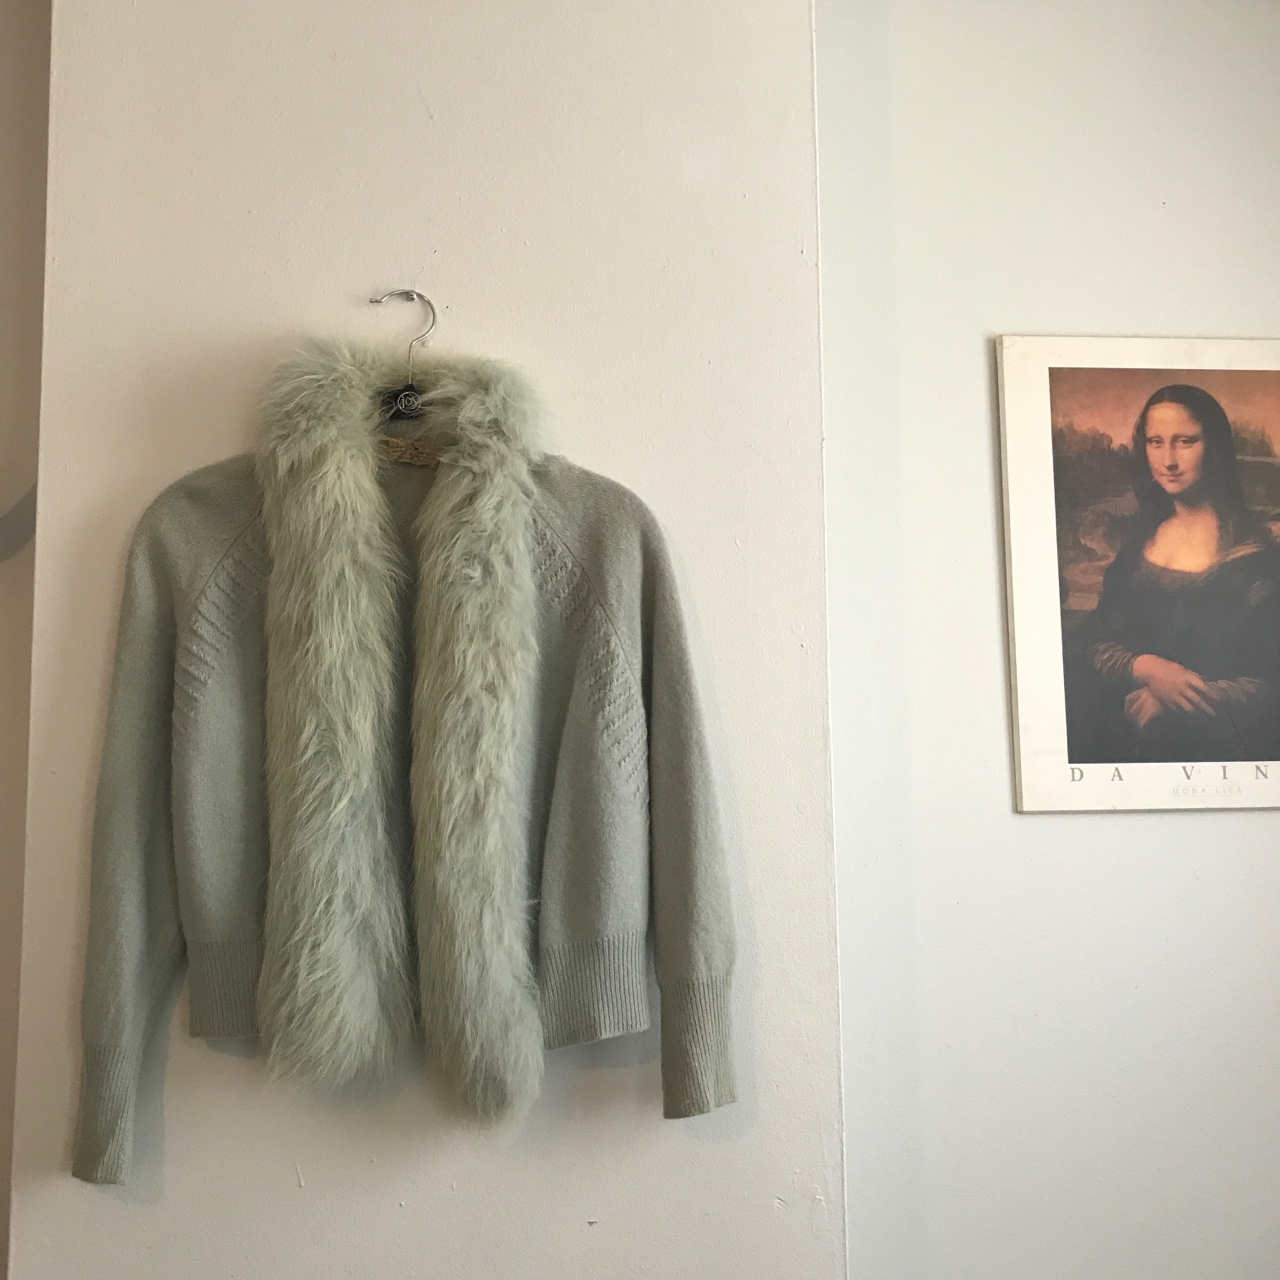 MINT GREEN VINTAGE FUR SWEATER! Extremely out of